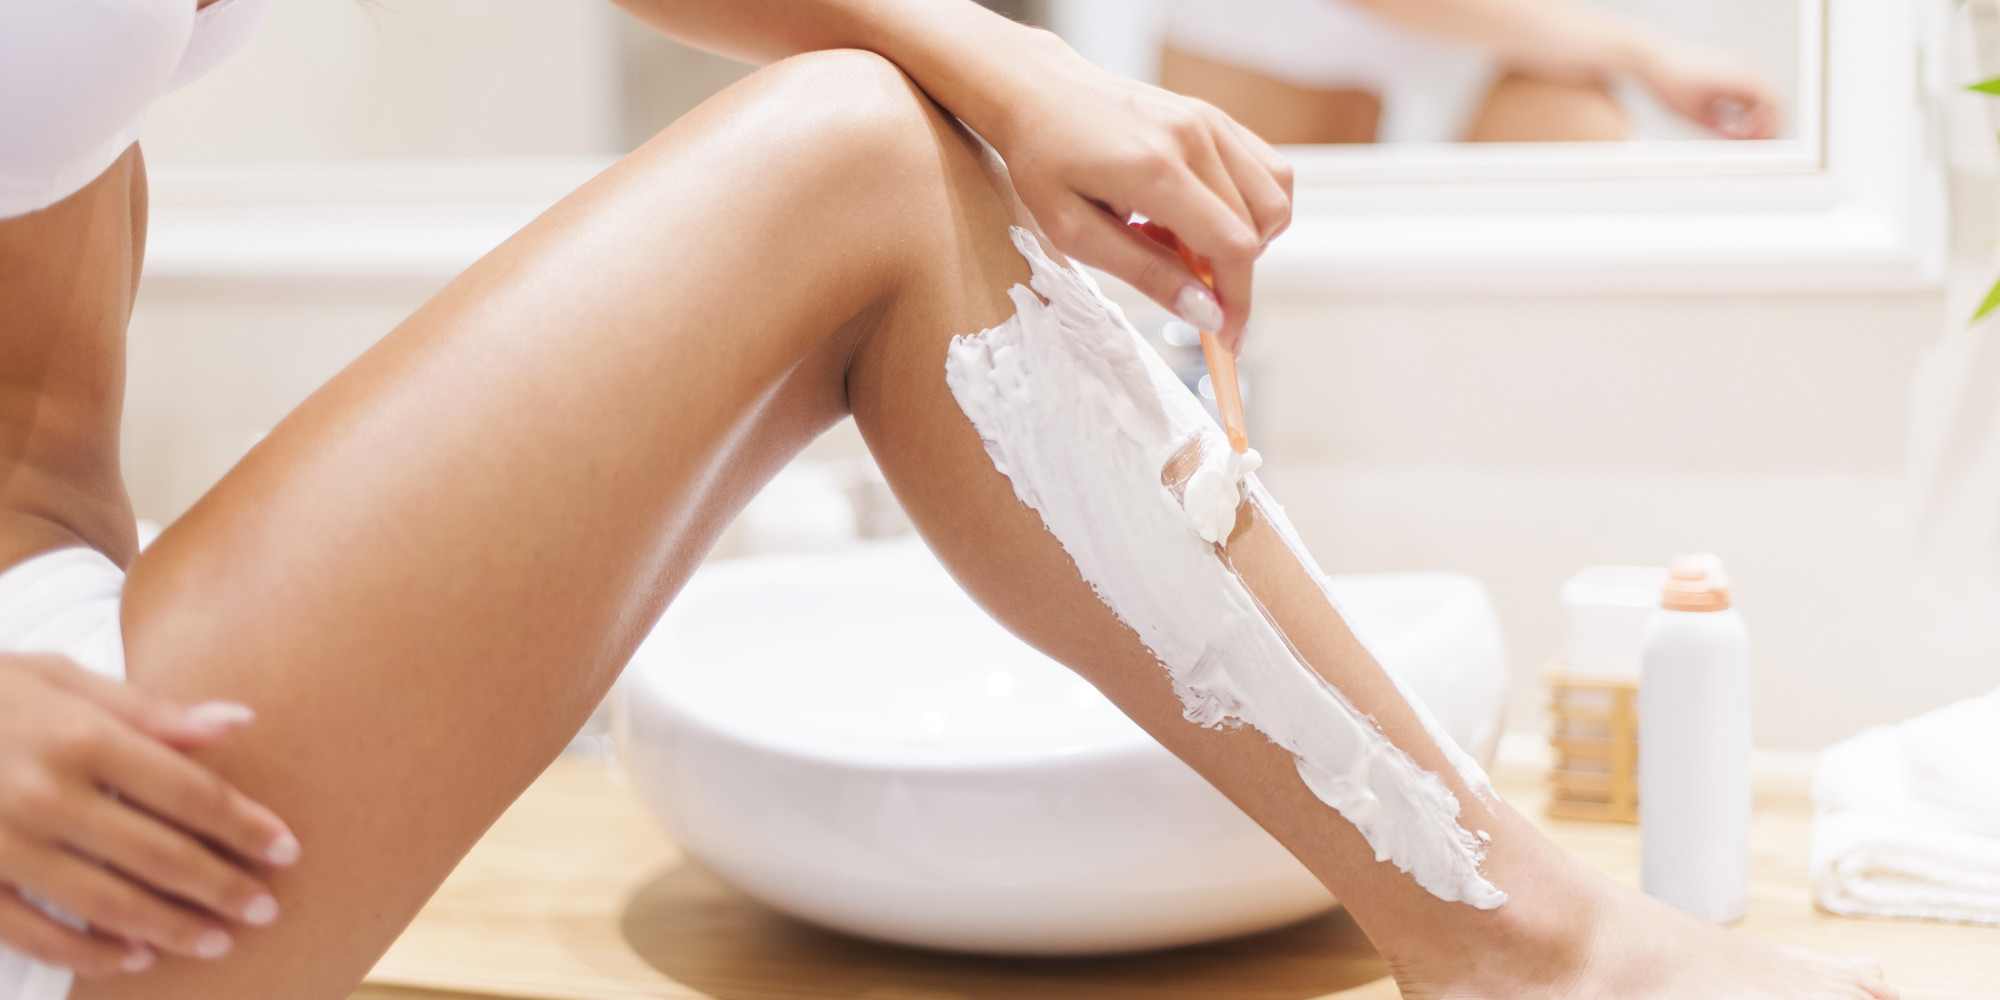 how does hair removal cream work